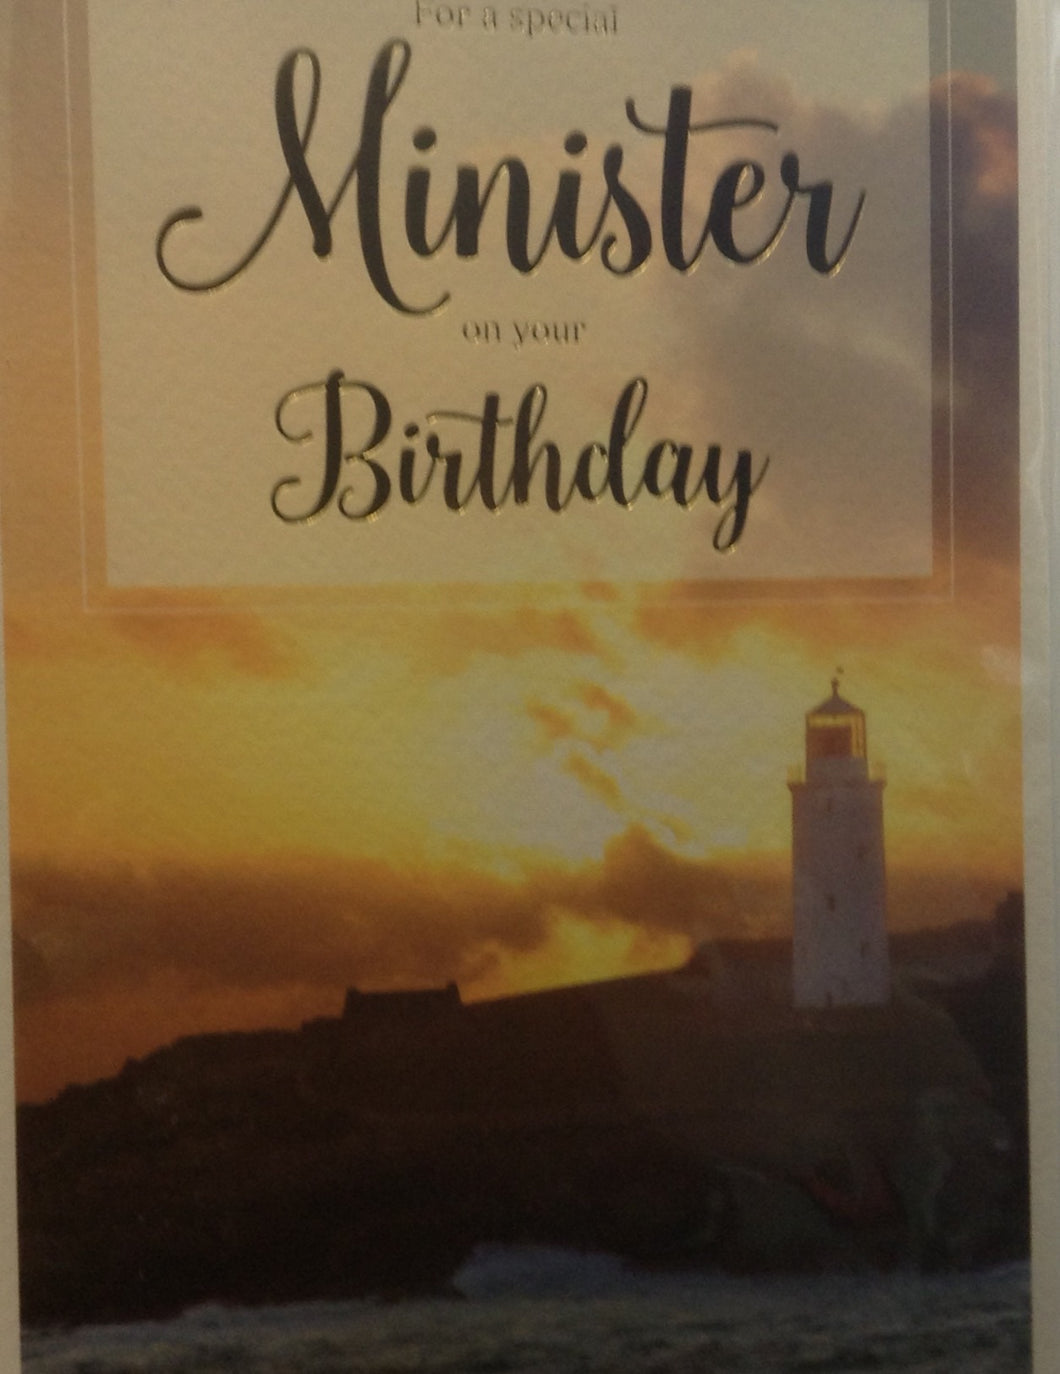 Minister Birthday Card